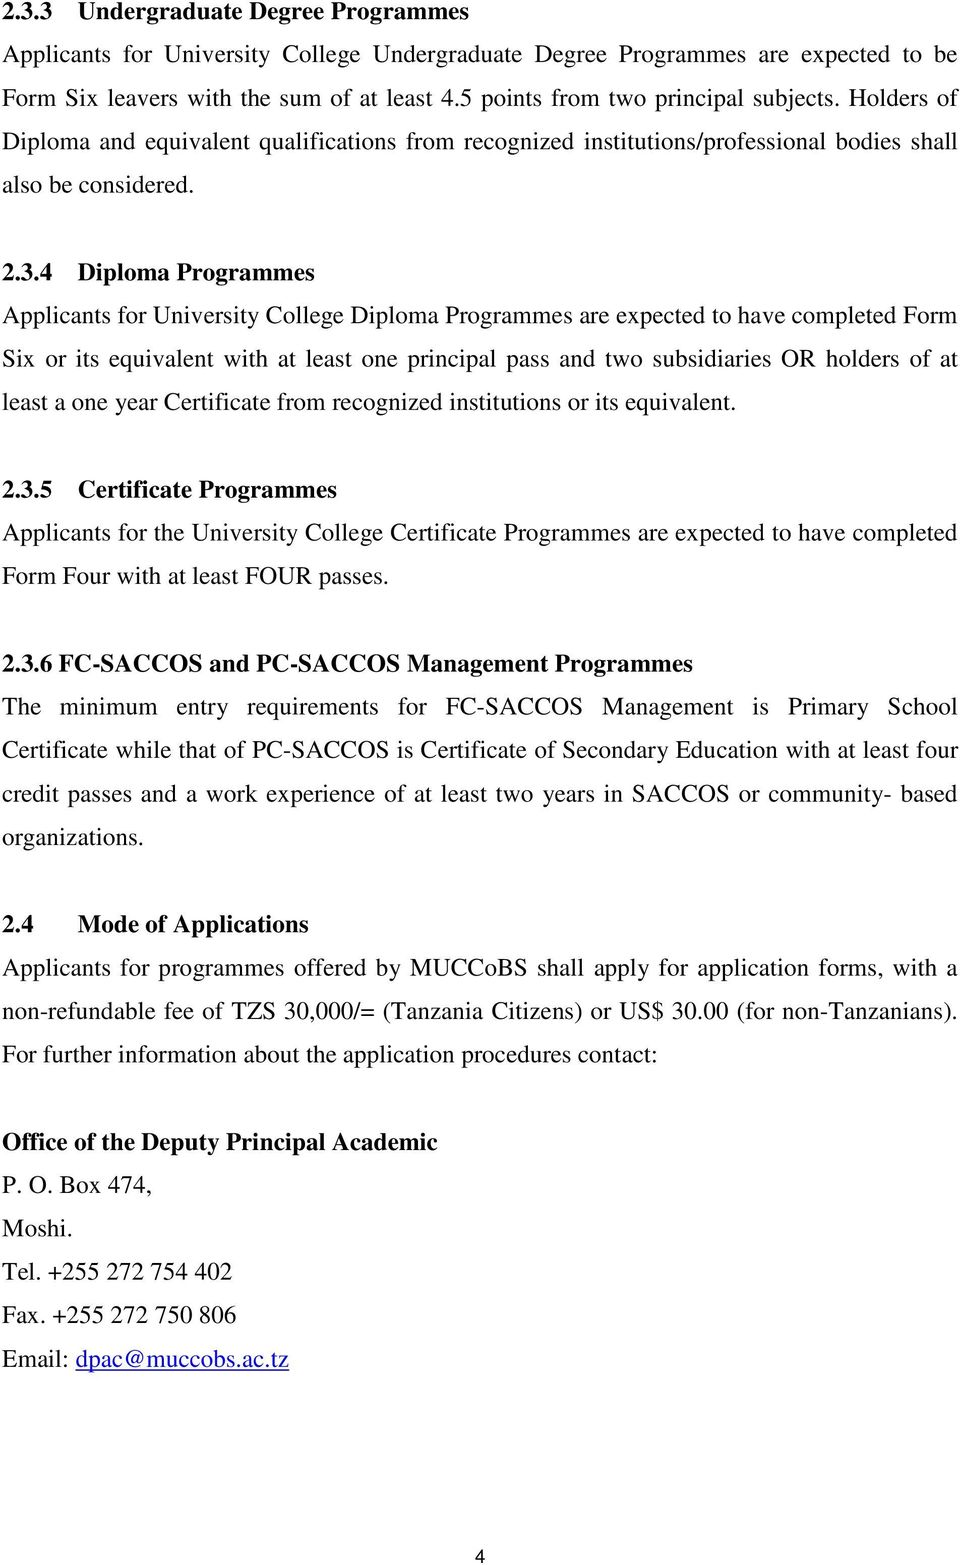 4 Diploma Programmes Applicants for University College Diploma Programmes are expected to have completed Form Six or its equivalent with at least one principal pass and two subsidiaries OR holders of